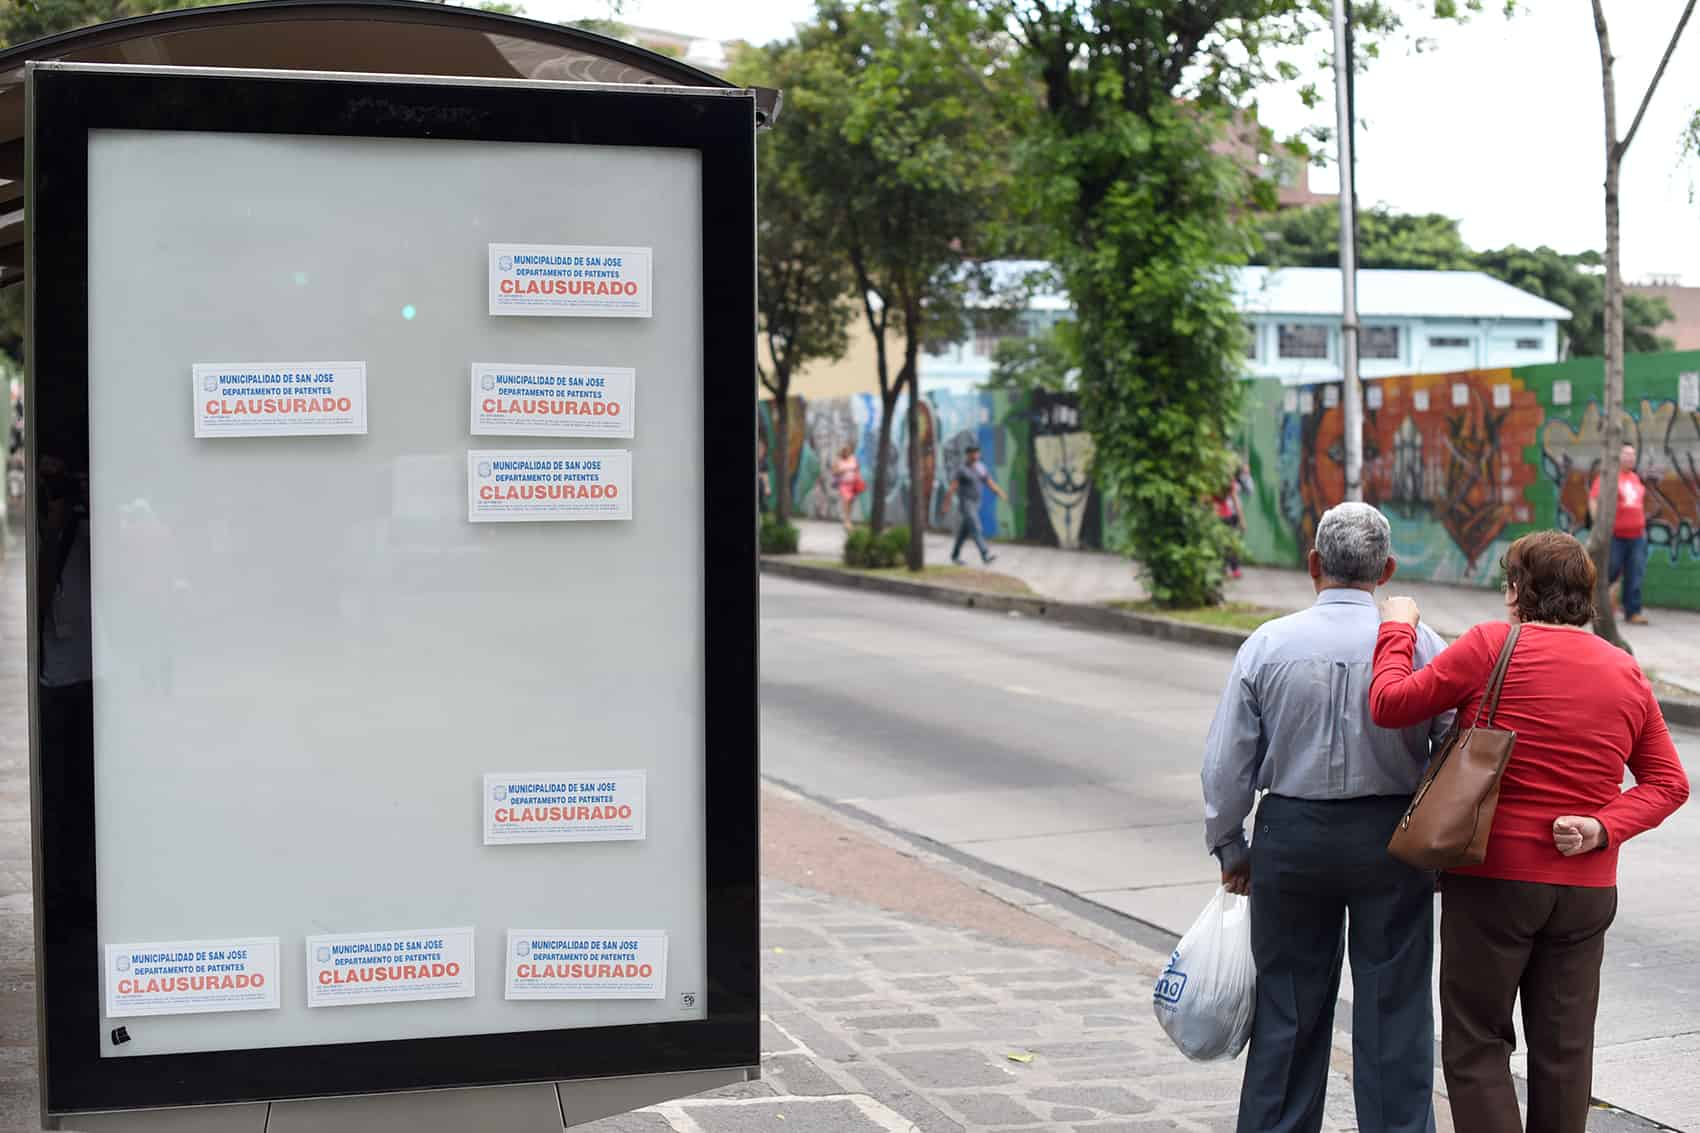 Shut down ads in San José - Aug. 12, 2015